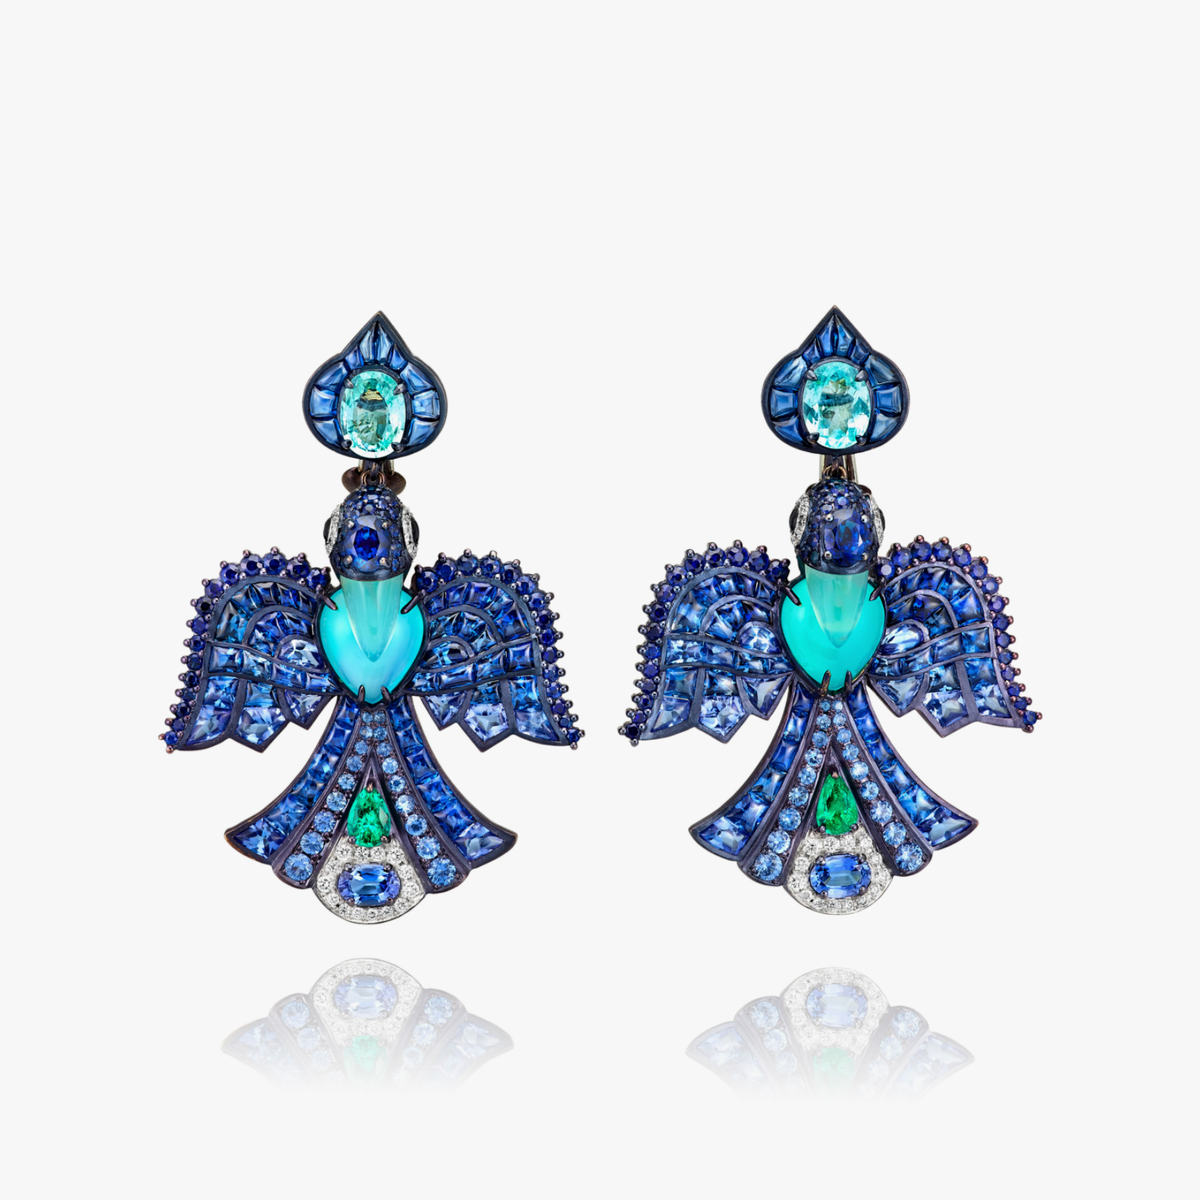 Caravans Lointaines Bird Earrings